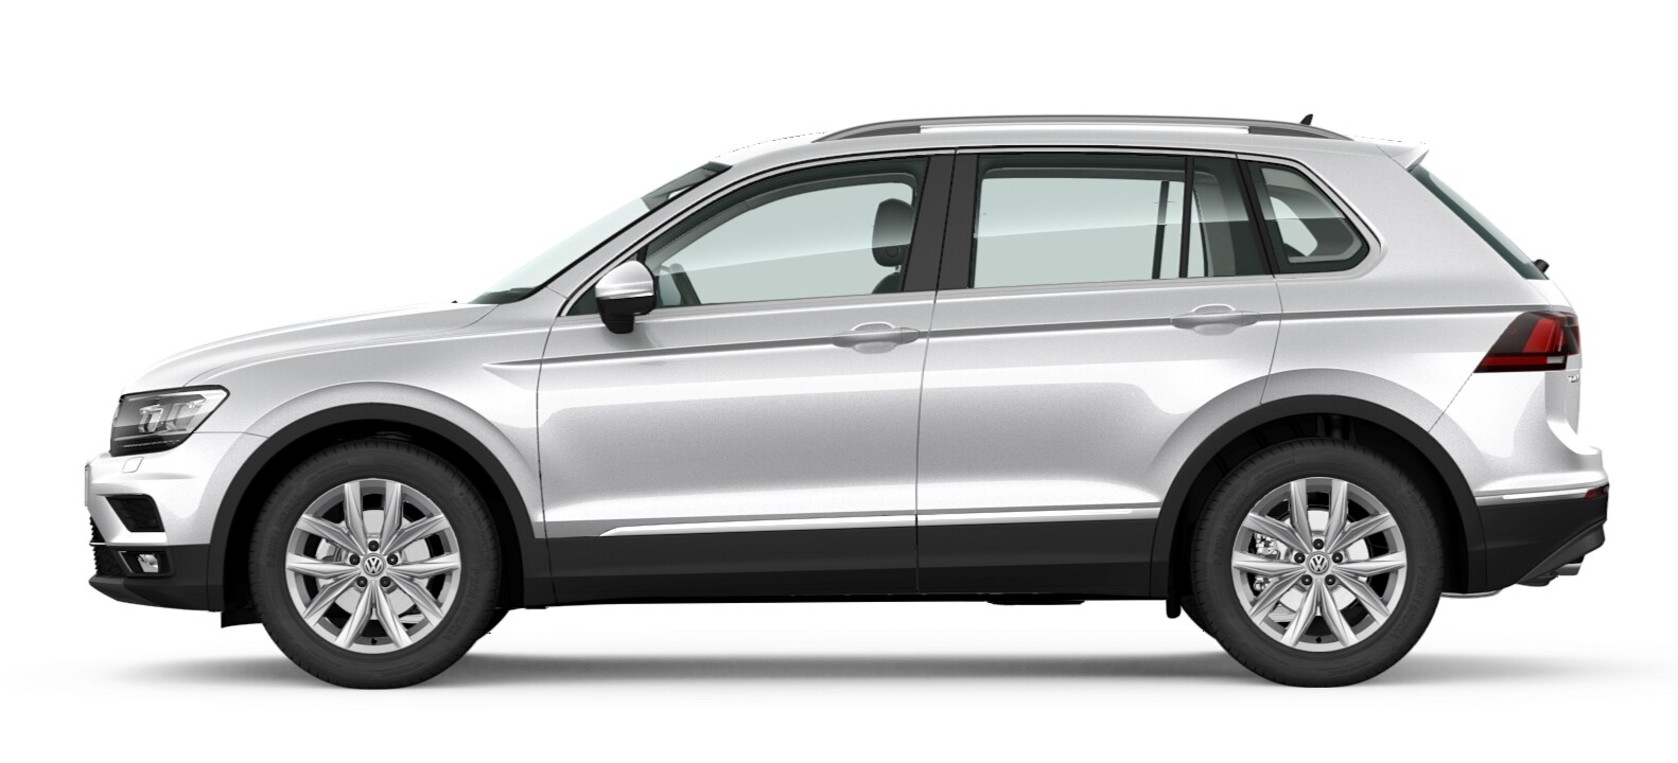 Tiguan Highline, 2.0 TDI, 150 Zs, DSG, 4 Motion